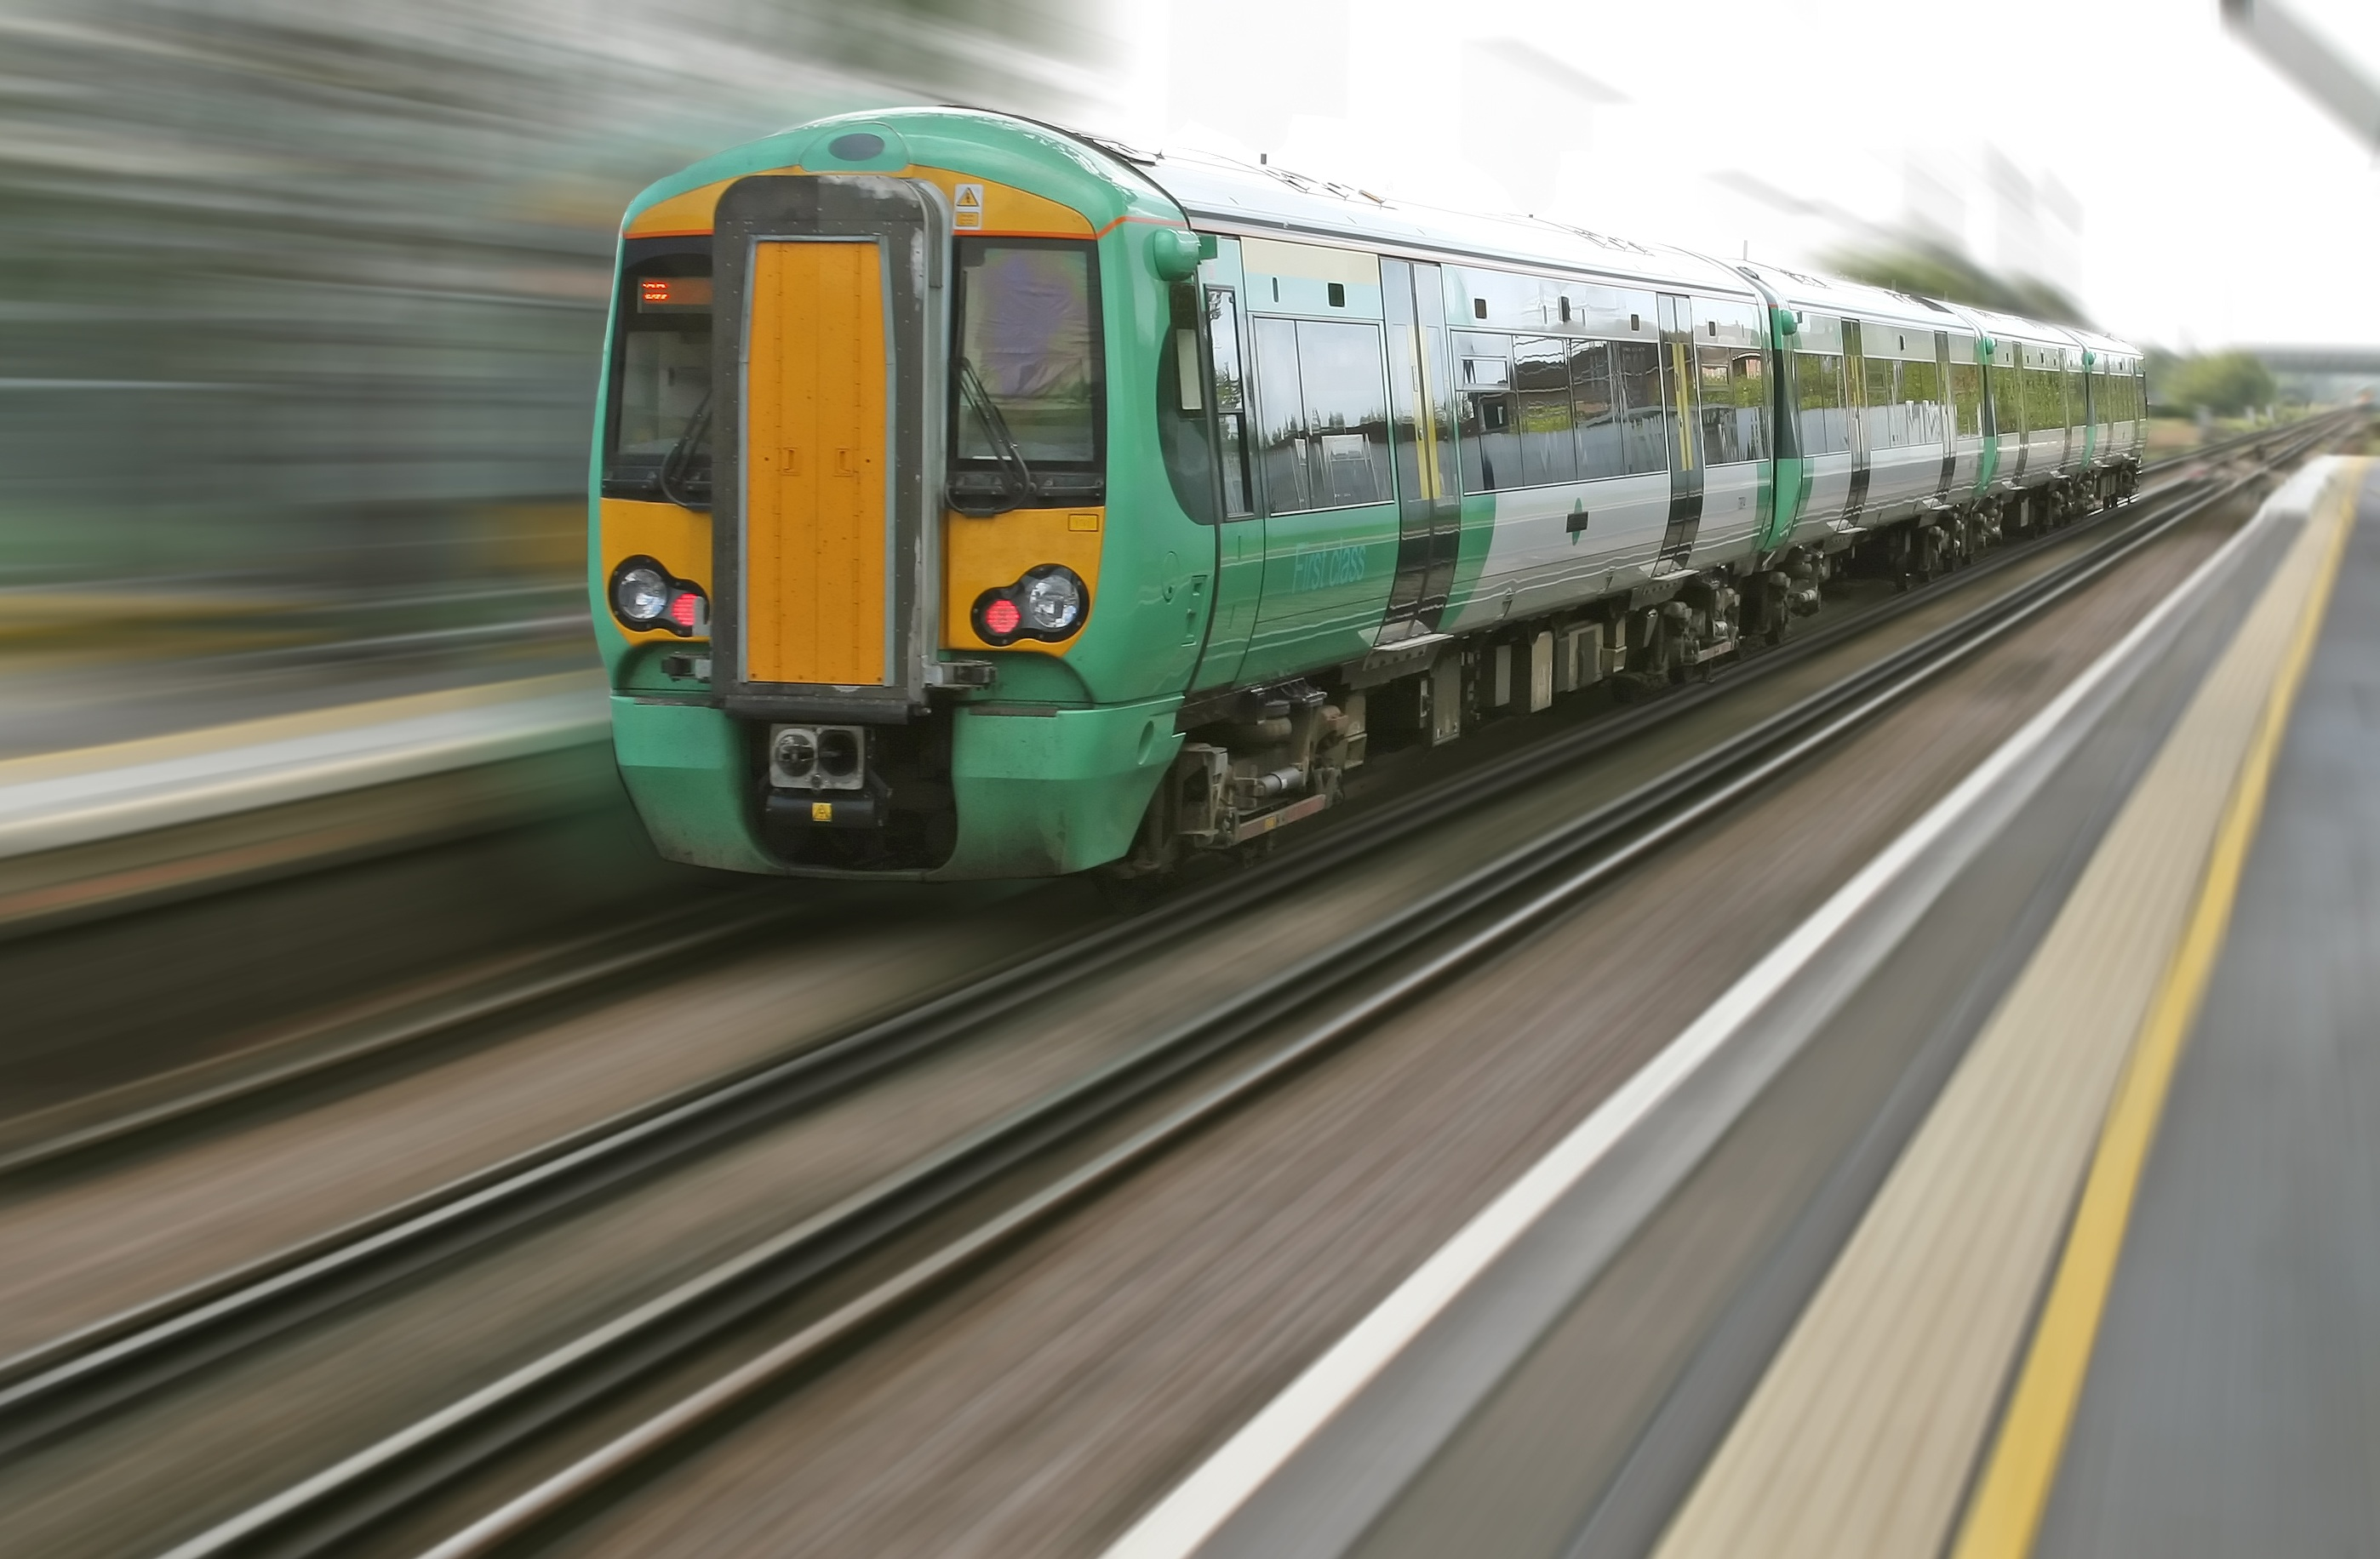 Retrofit Rail emissions green train moving on track